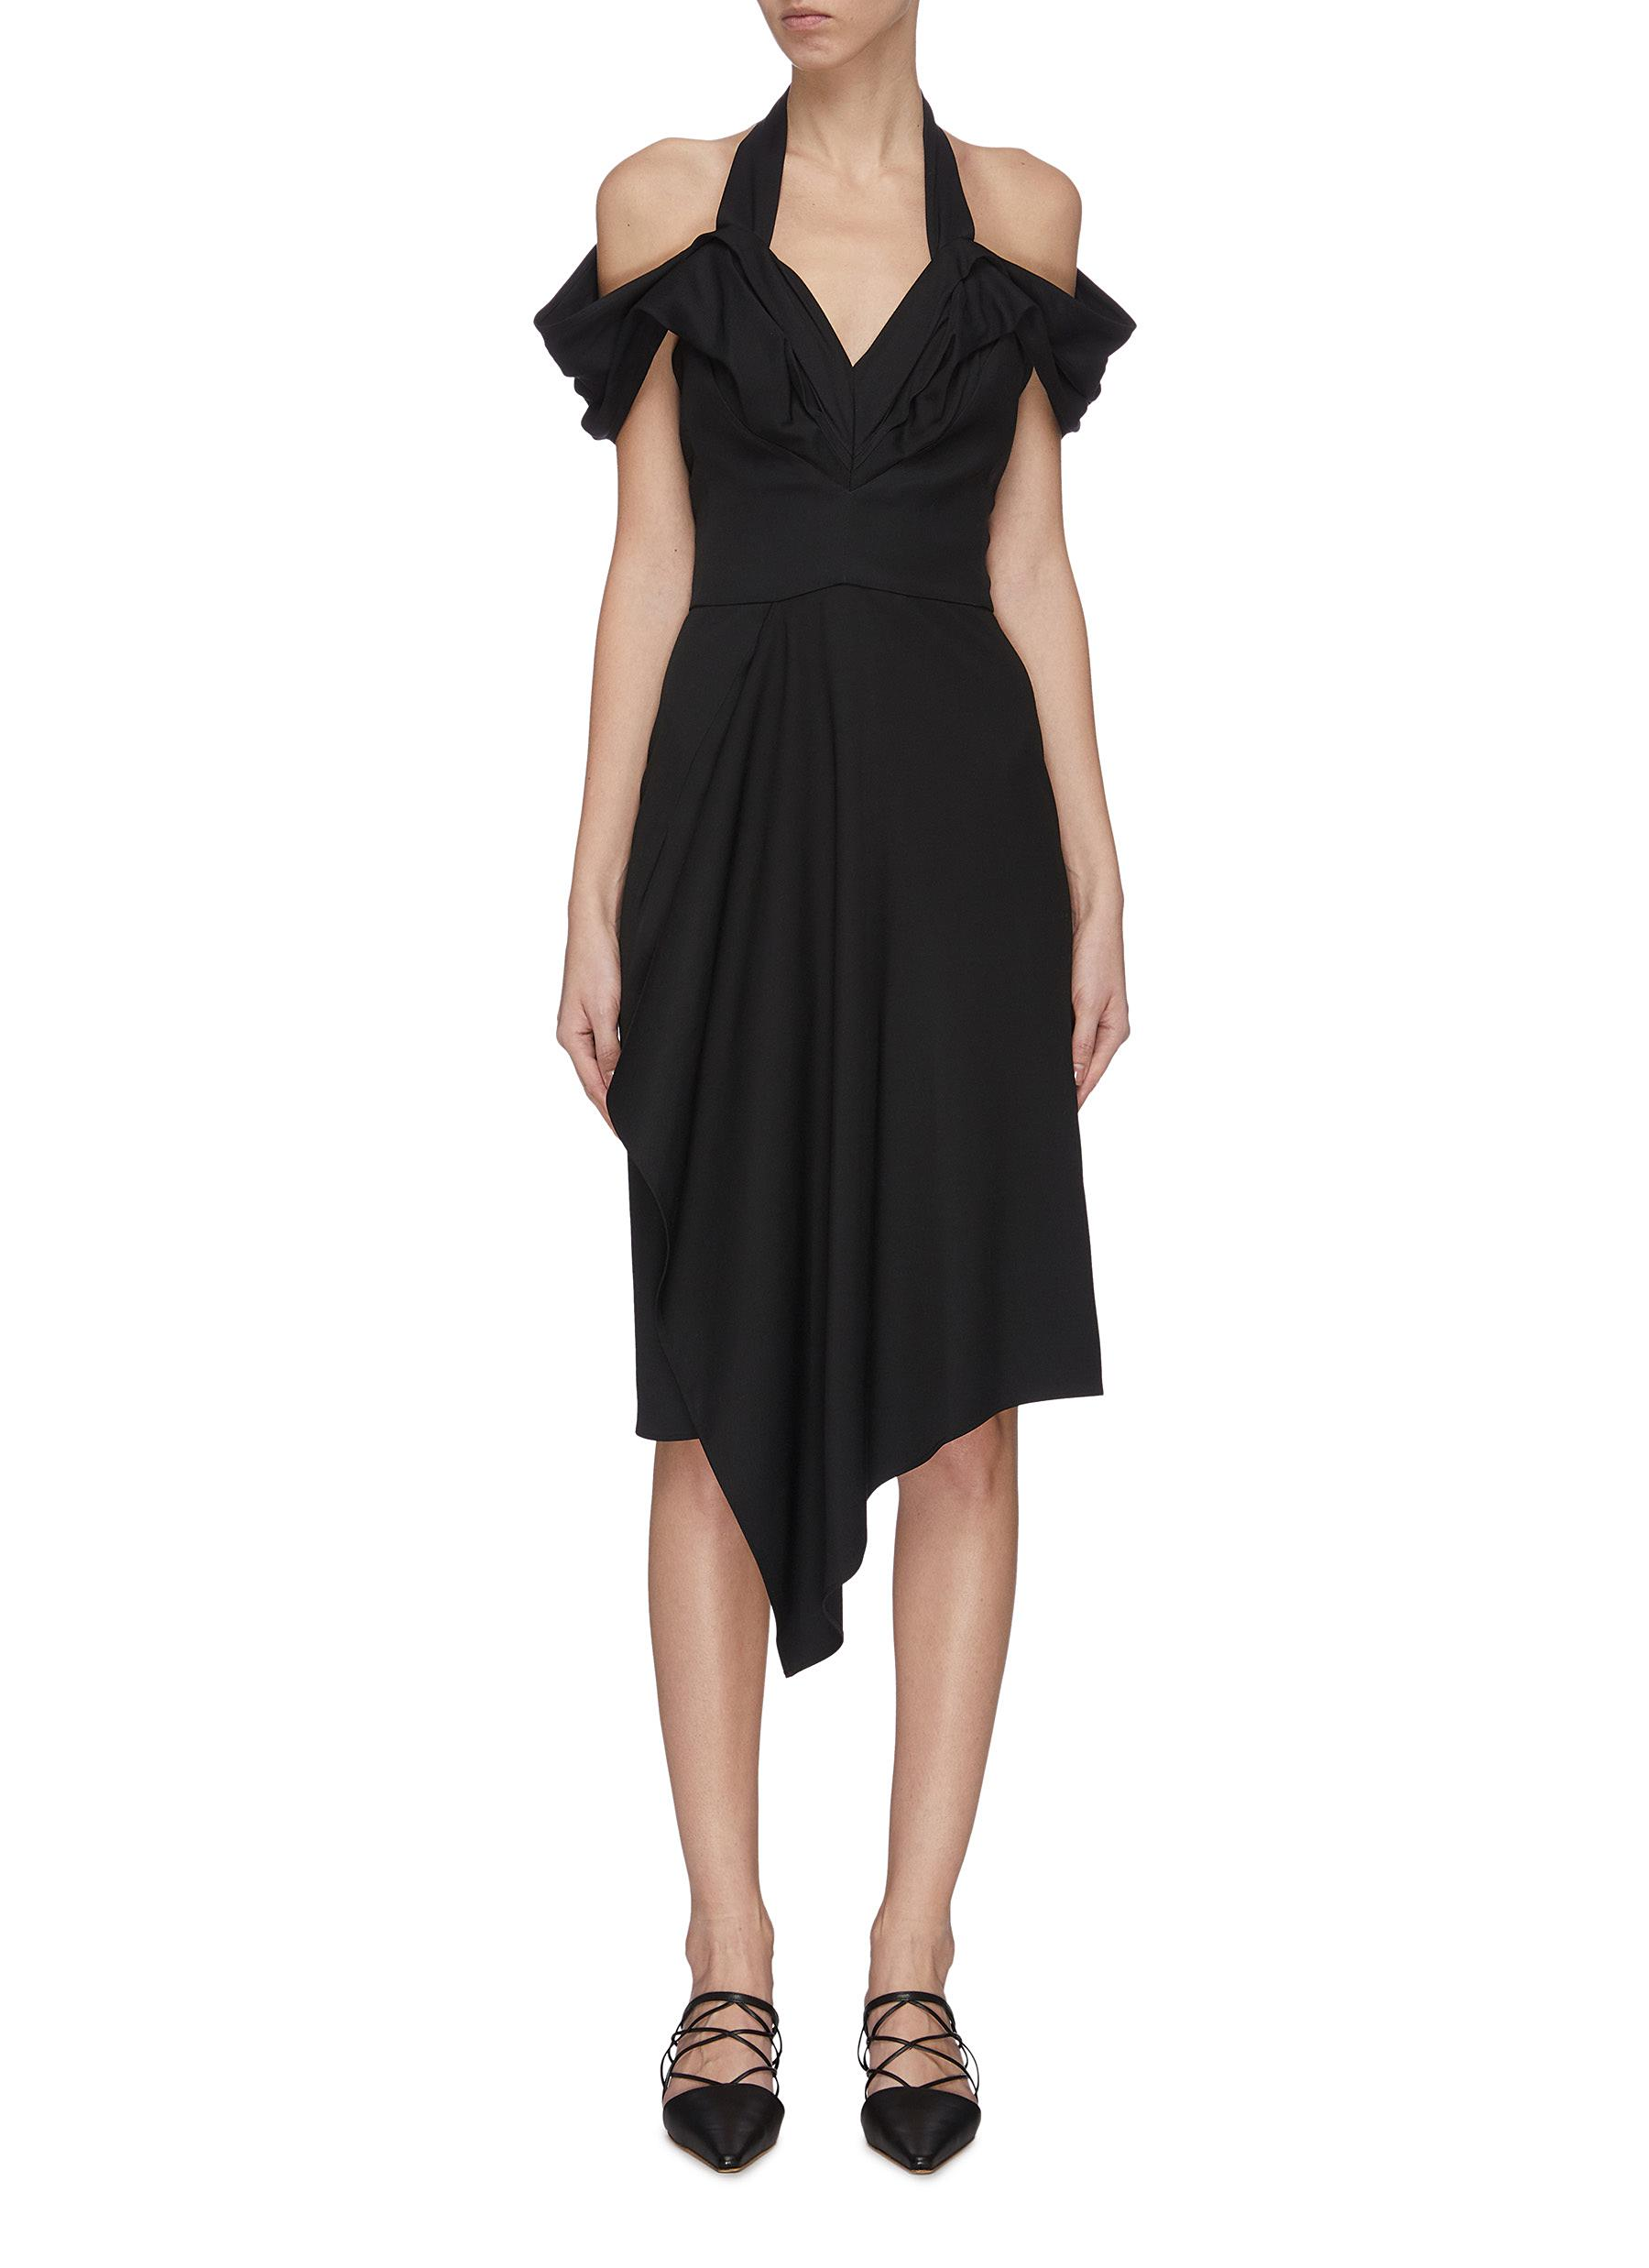 Buy Maticevski Dresses 'Chrysalis' asymmetric V-neck dress